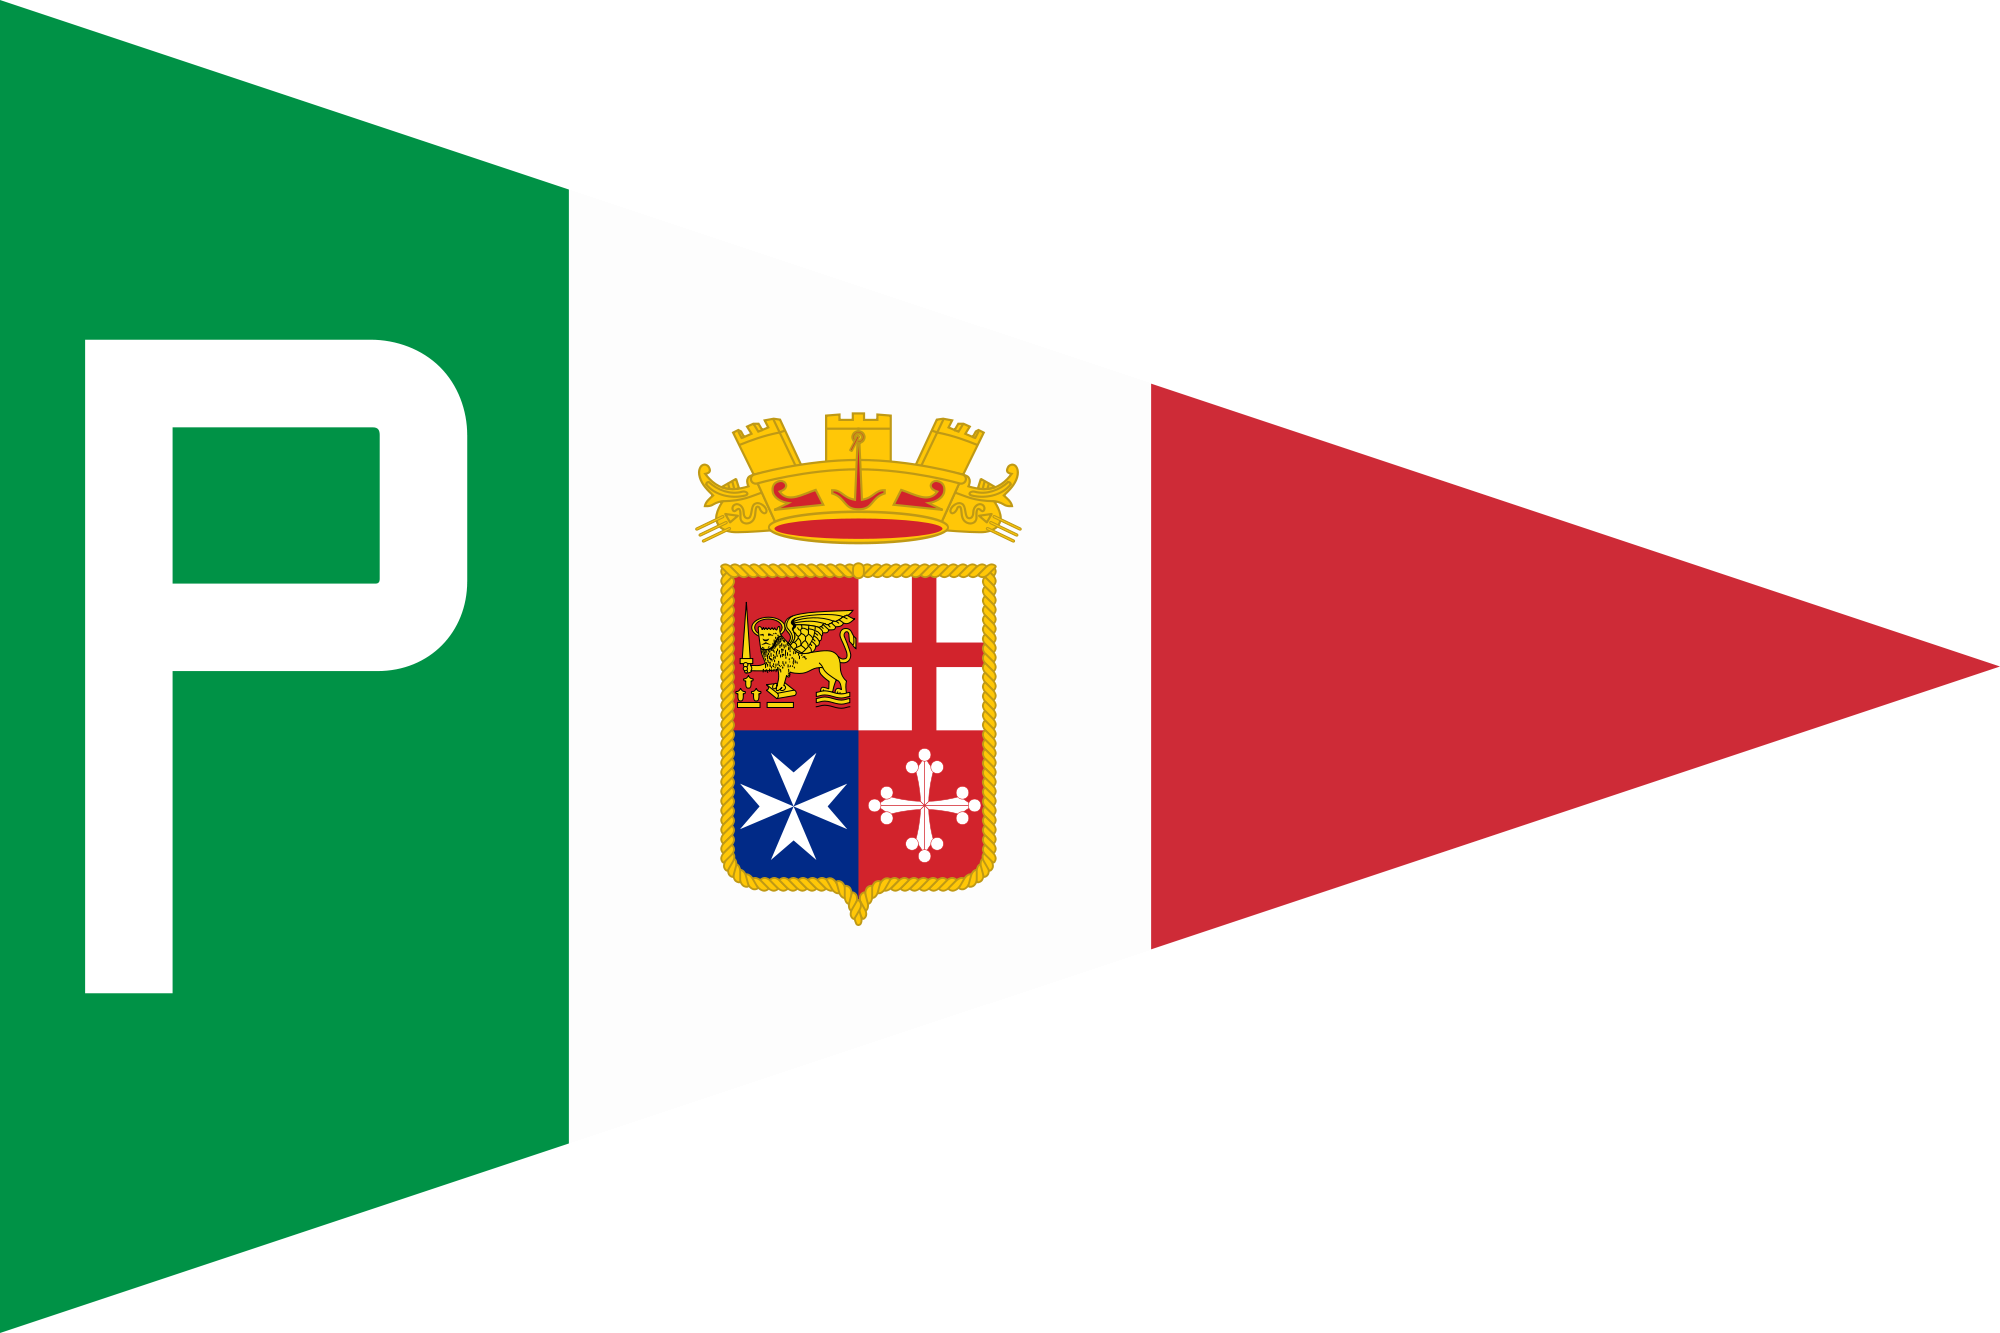 Italy clipart night italian. Mail ships of flags